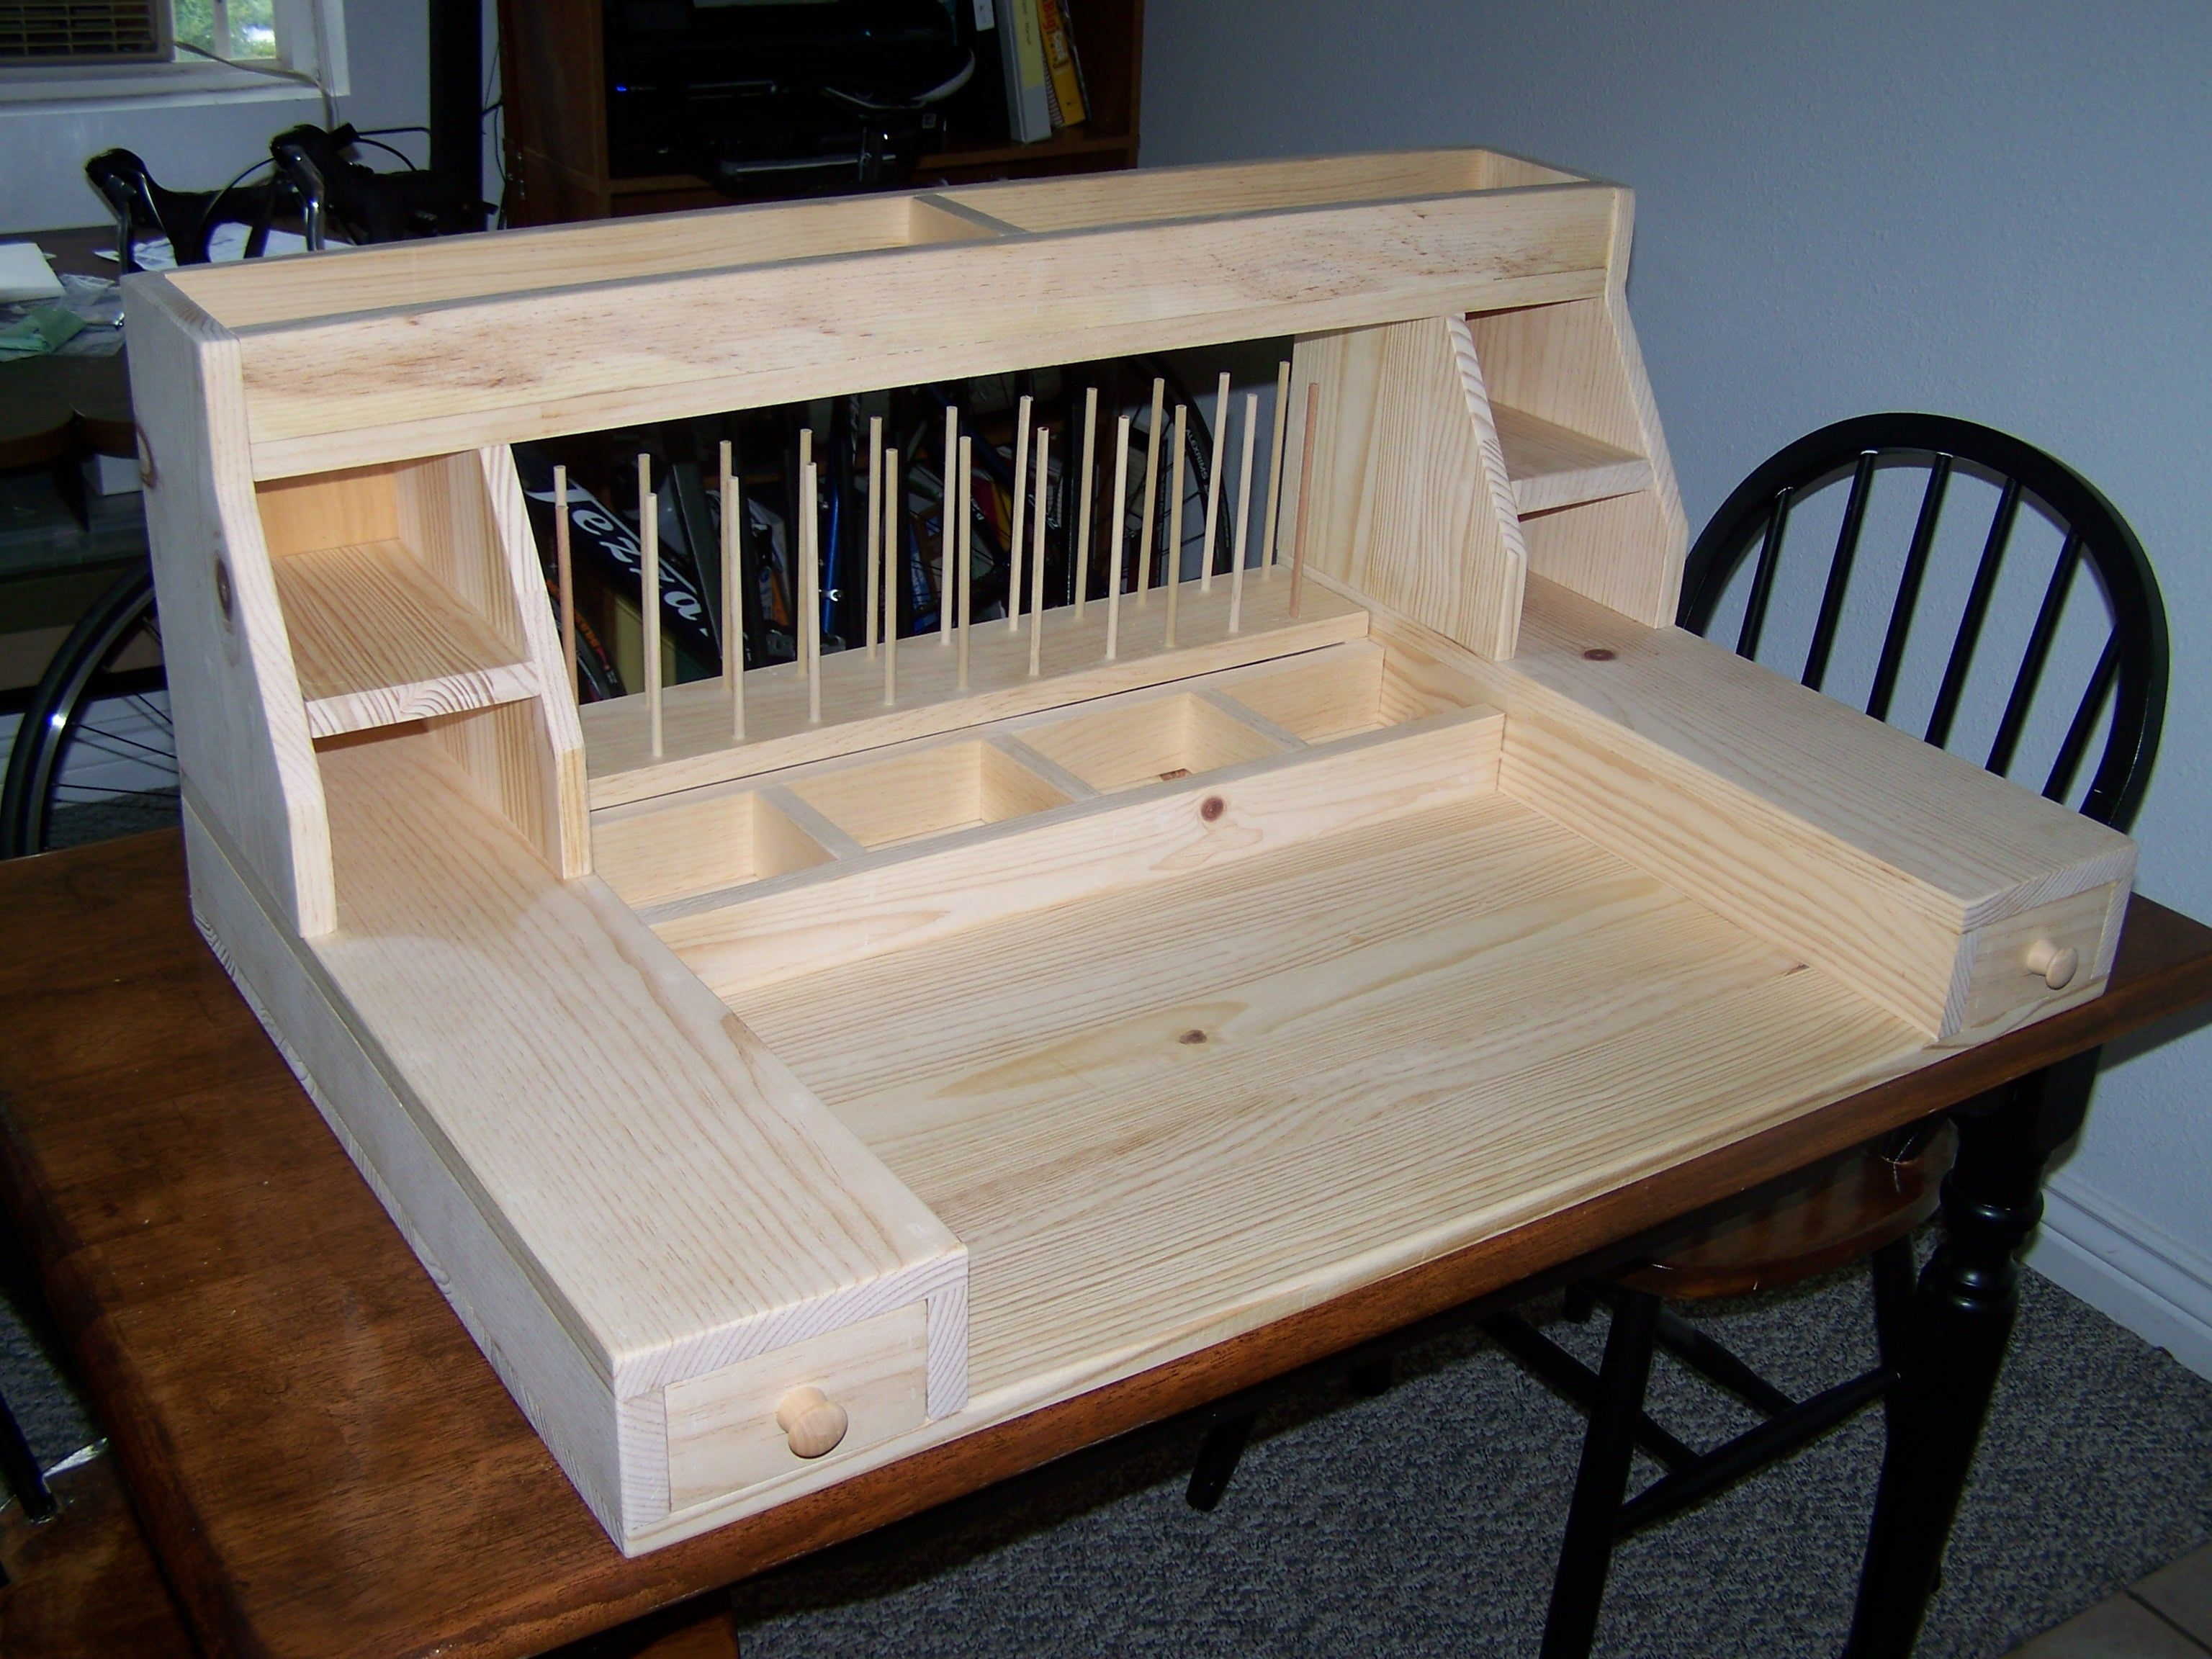 Fly Tying Desks And Benches - Fly tying bench